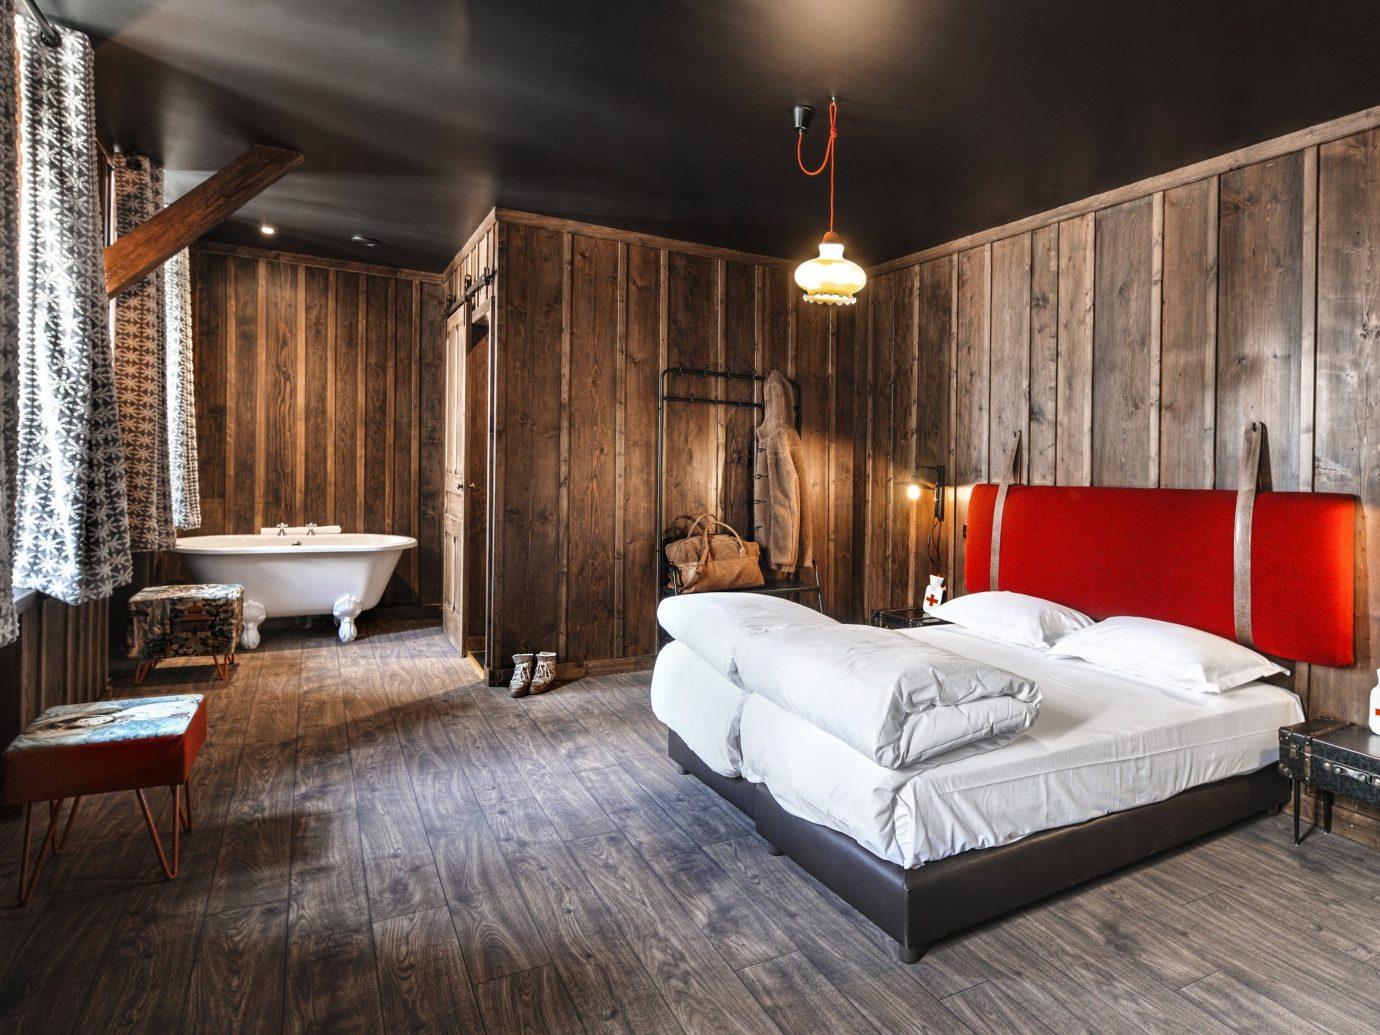 Boutique Hotels Hotels Outdoors + Adventure Winter indoor floor bed room interior design ceiling Architecture wall Suite Bedroom wood bed frame hotel flooring furniture interior designer